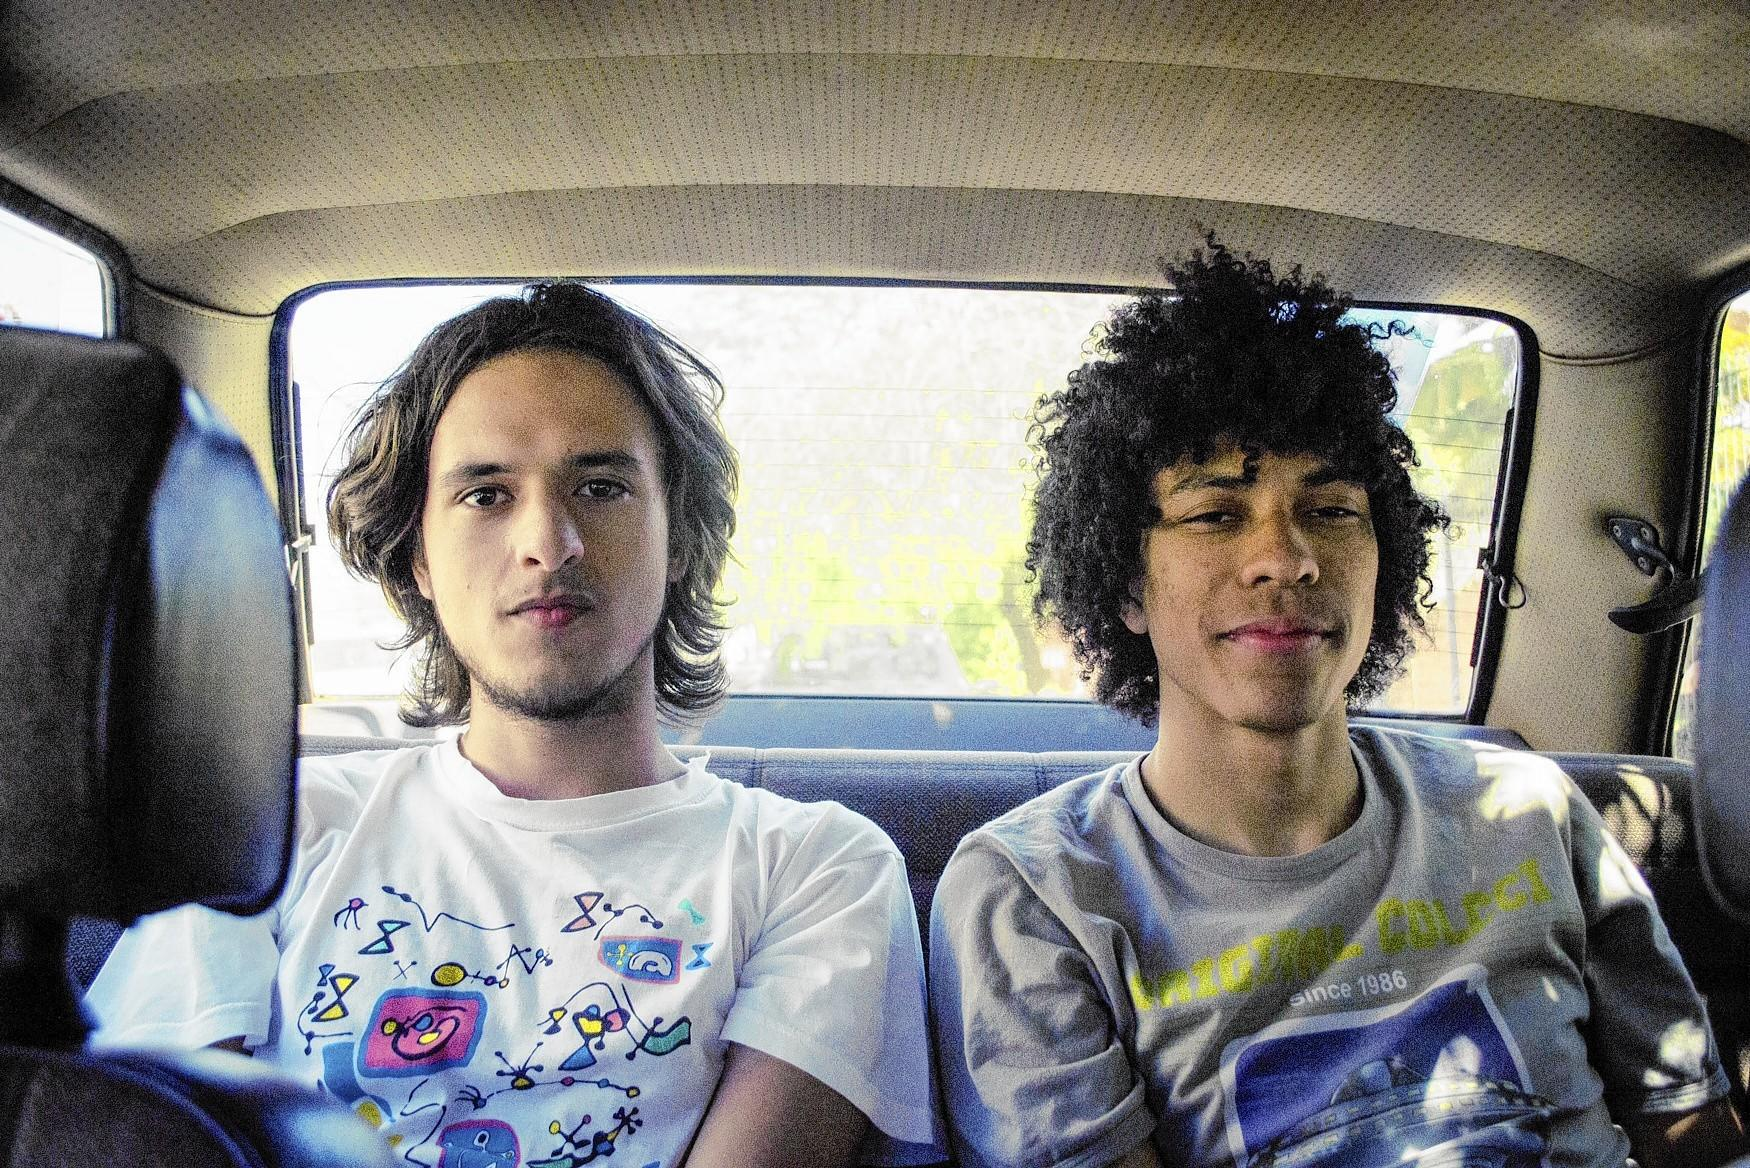 Boogarins performs at BAR in New Haven on Aug. 13.